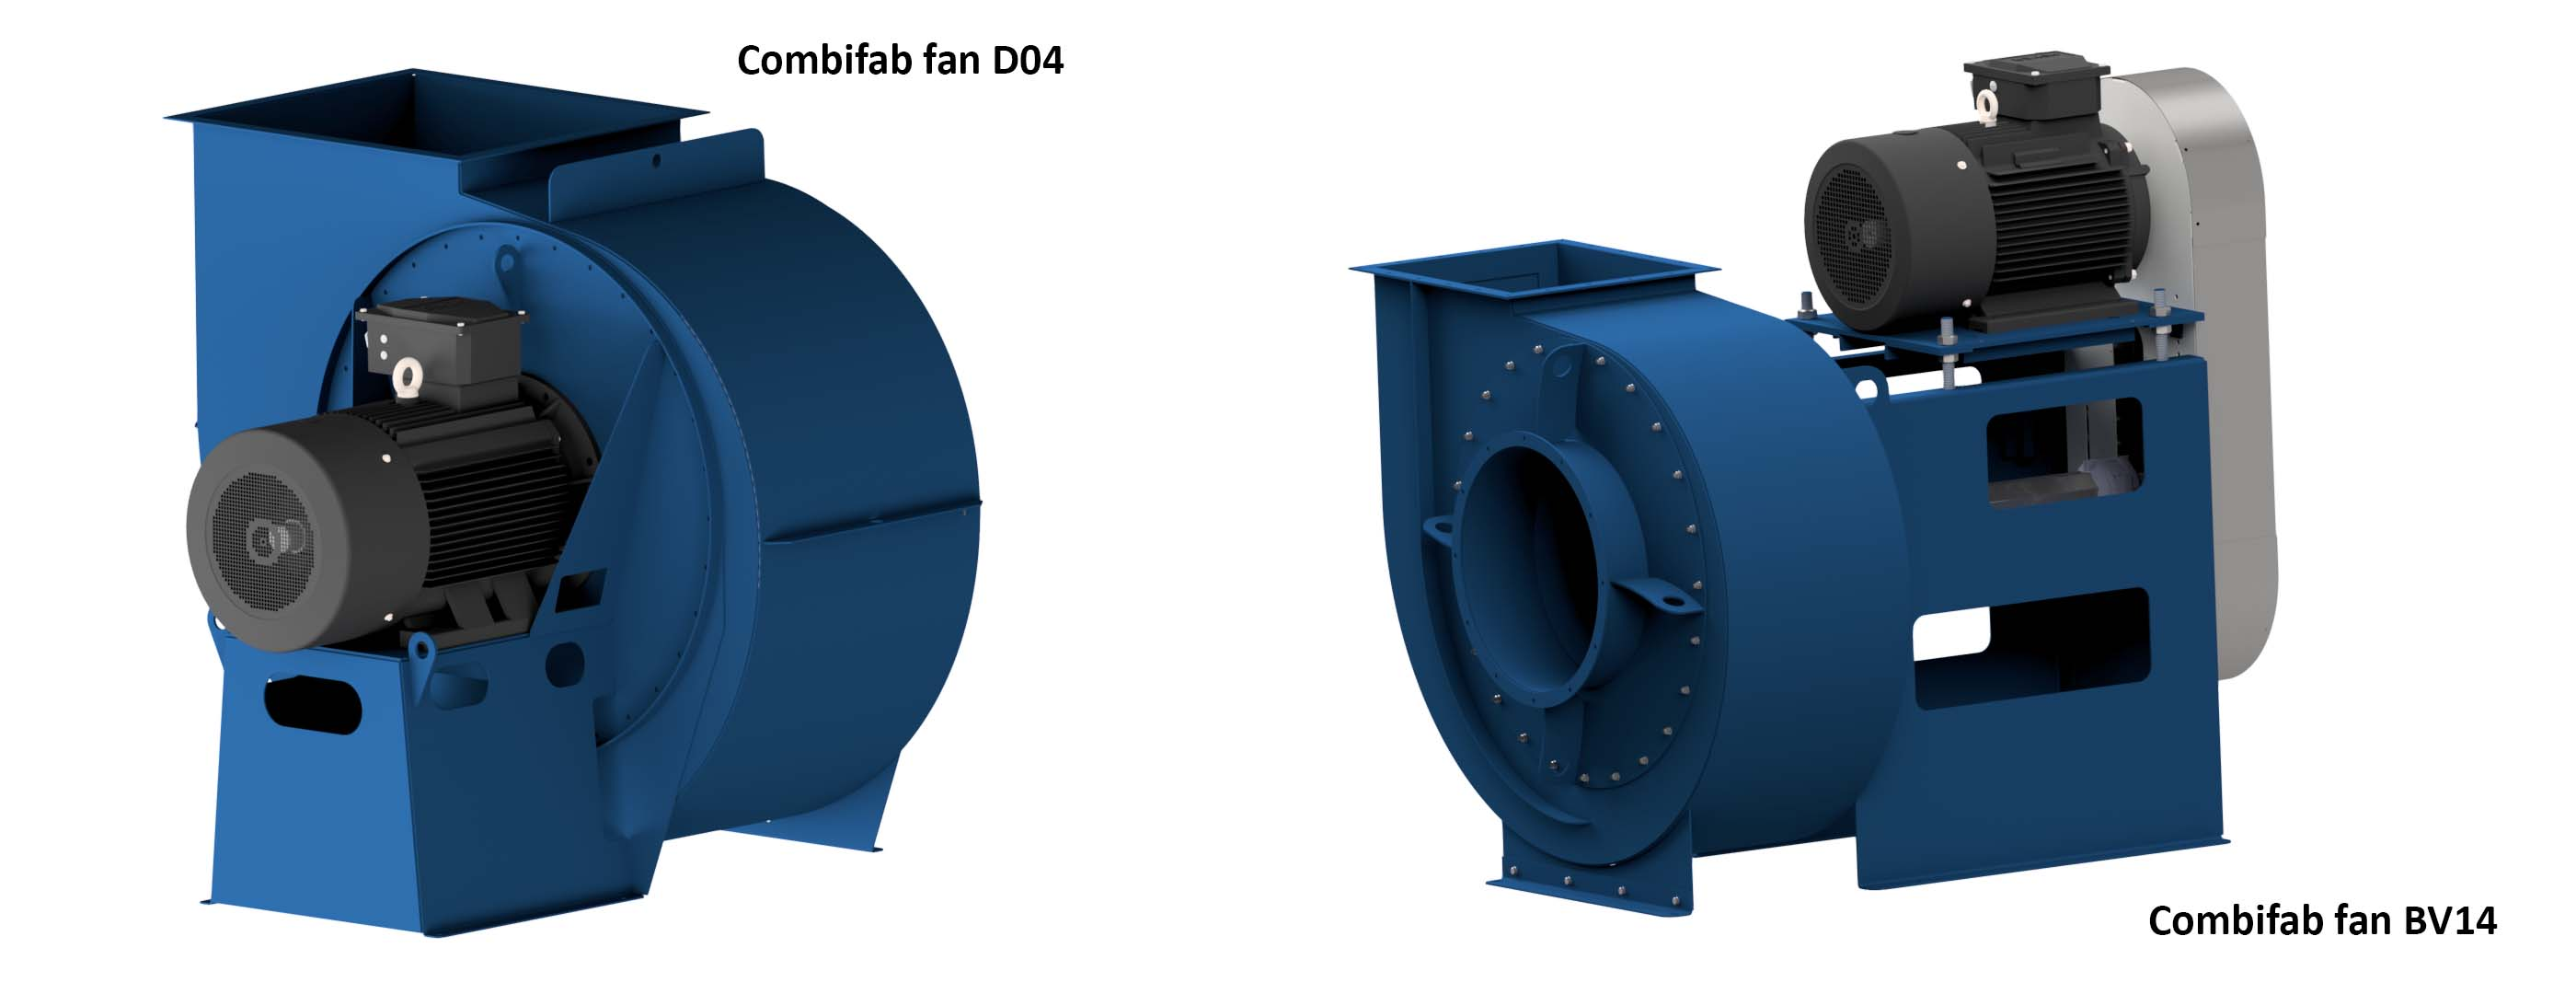 Combifab Fans and Blowers | Nederman